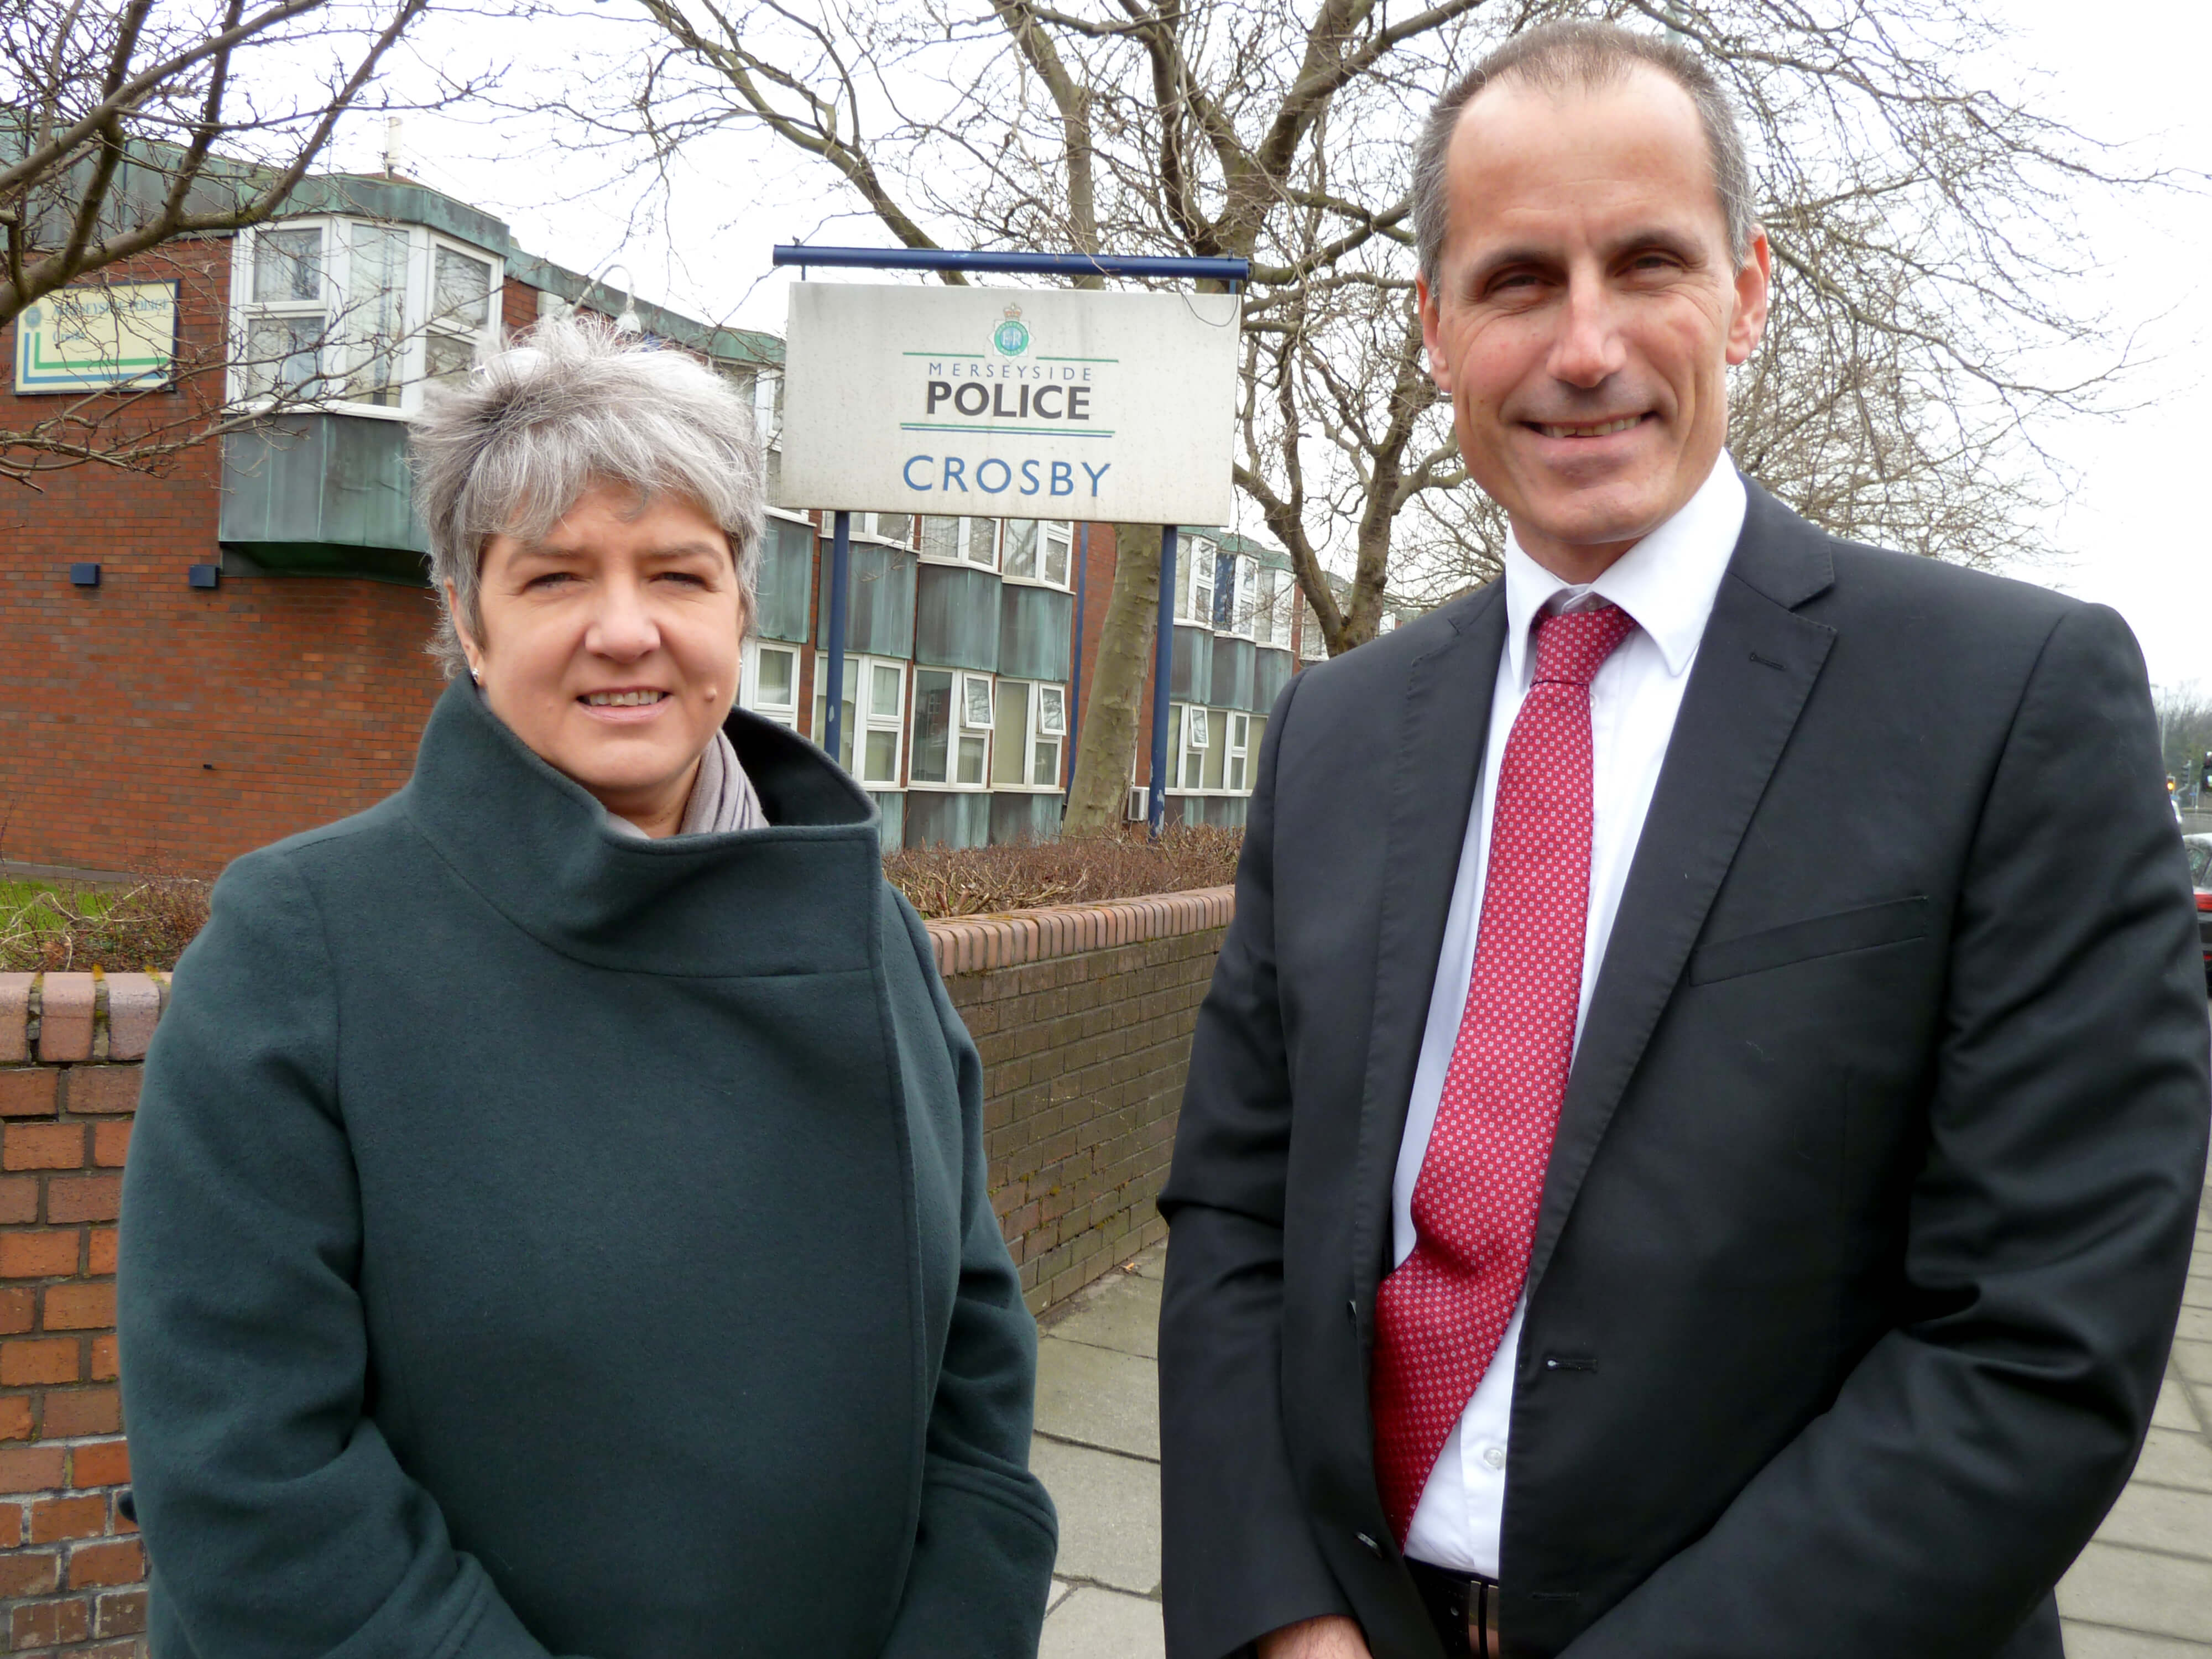 Police and Crime Commissioner Jane Kennedy with Labour's Bill Esterson on visits to police stations in Formby, Crosby and Maghull.